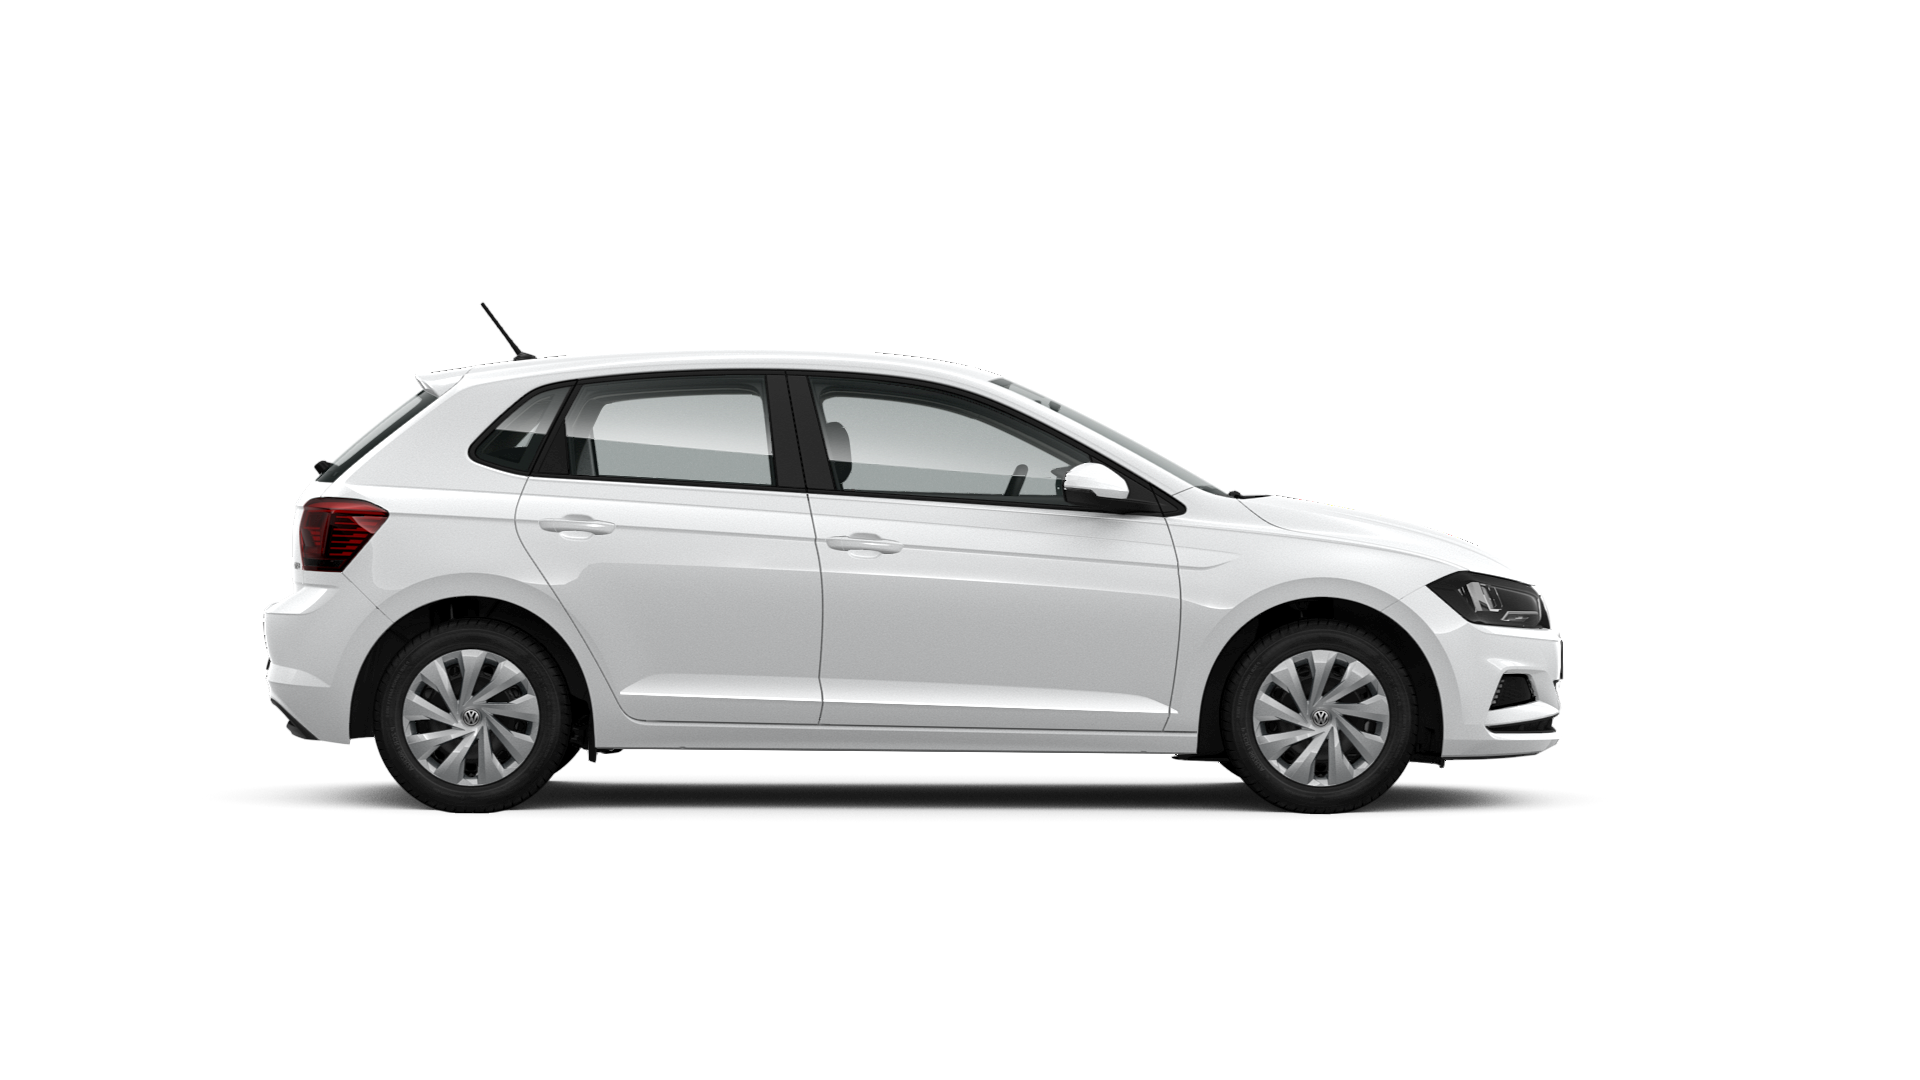 Our latest Volkswagen Specials Coffs Harbour Geoff King Volkswagen